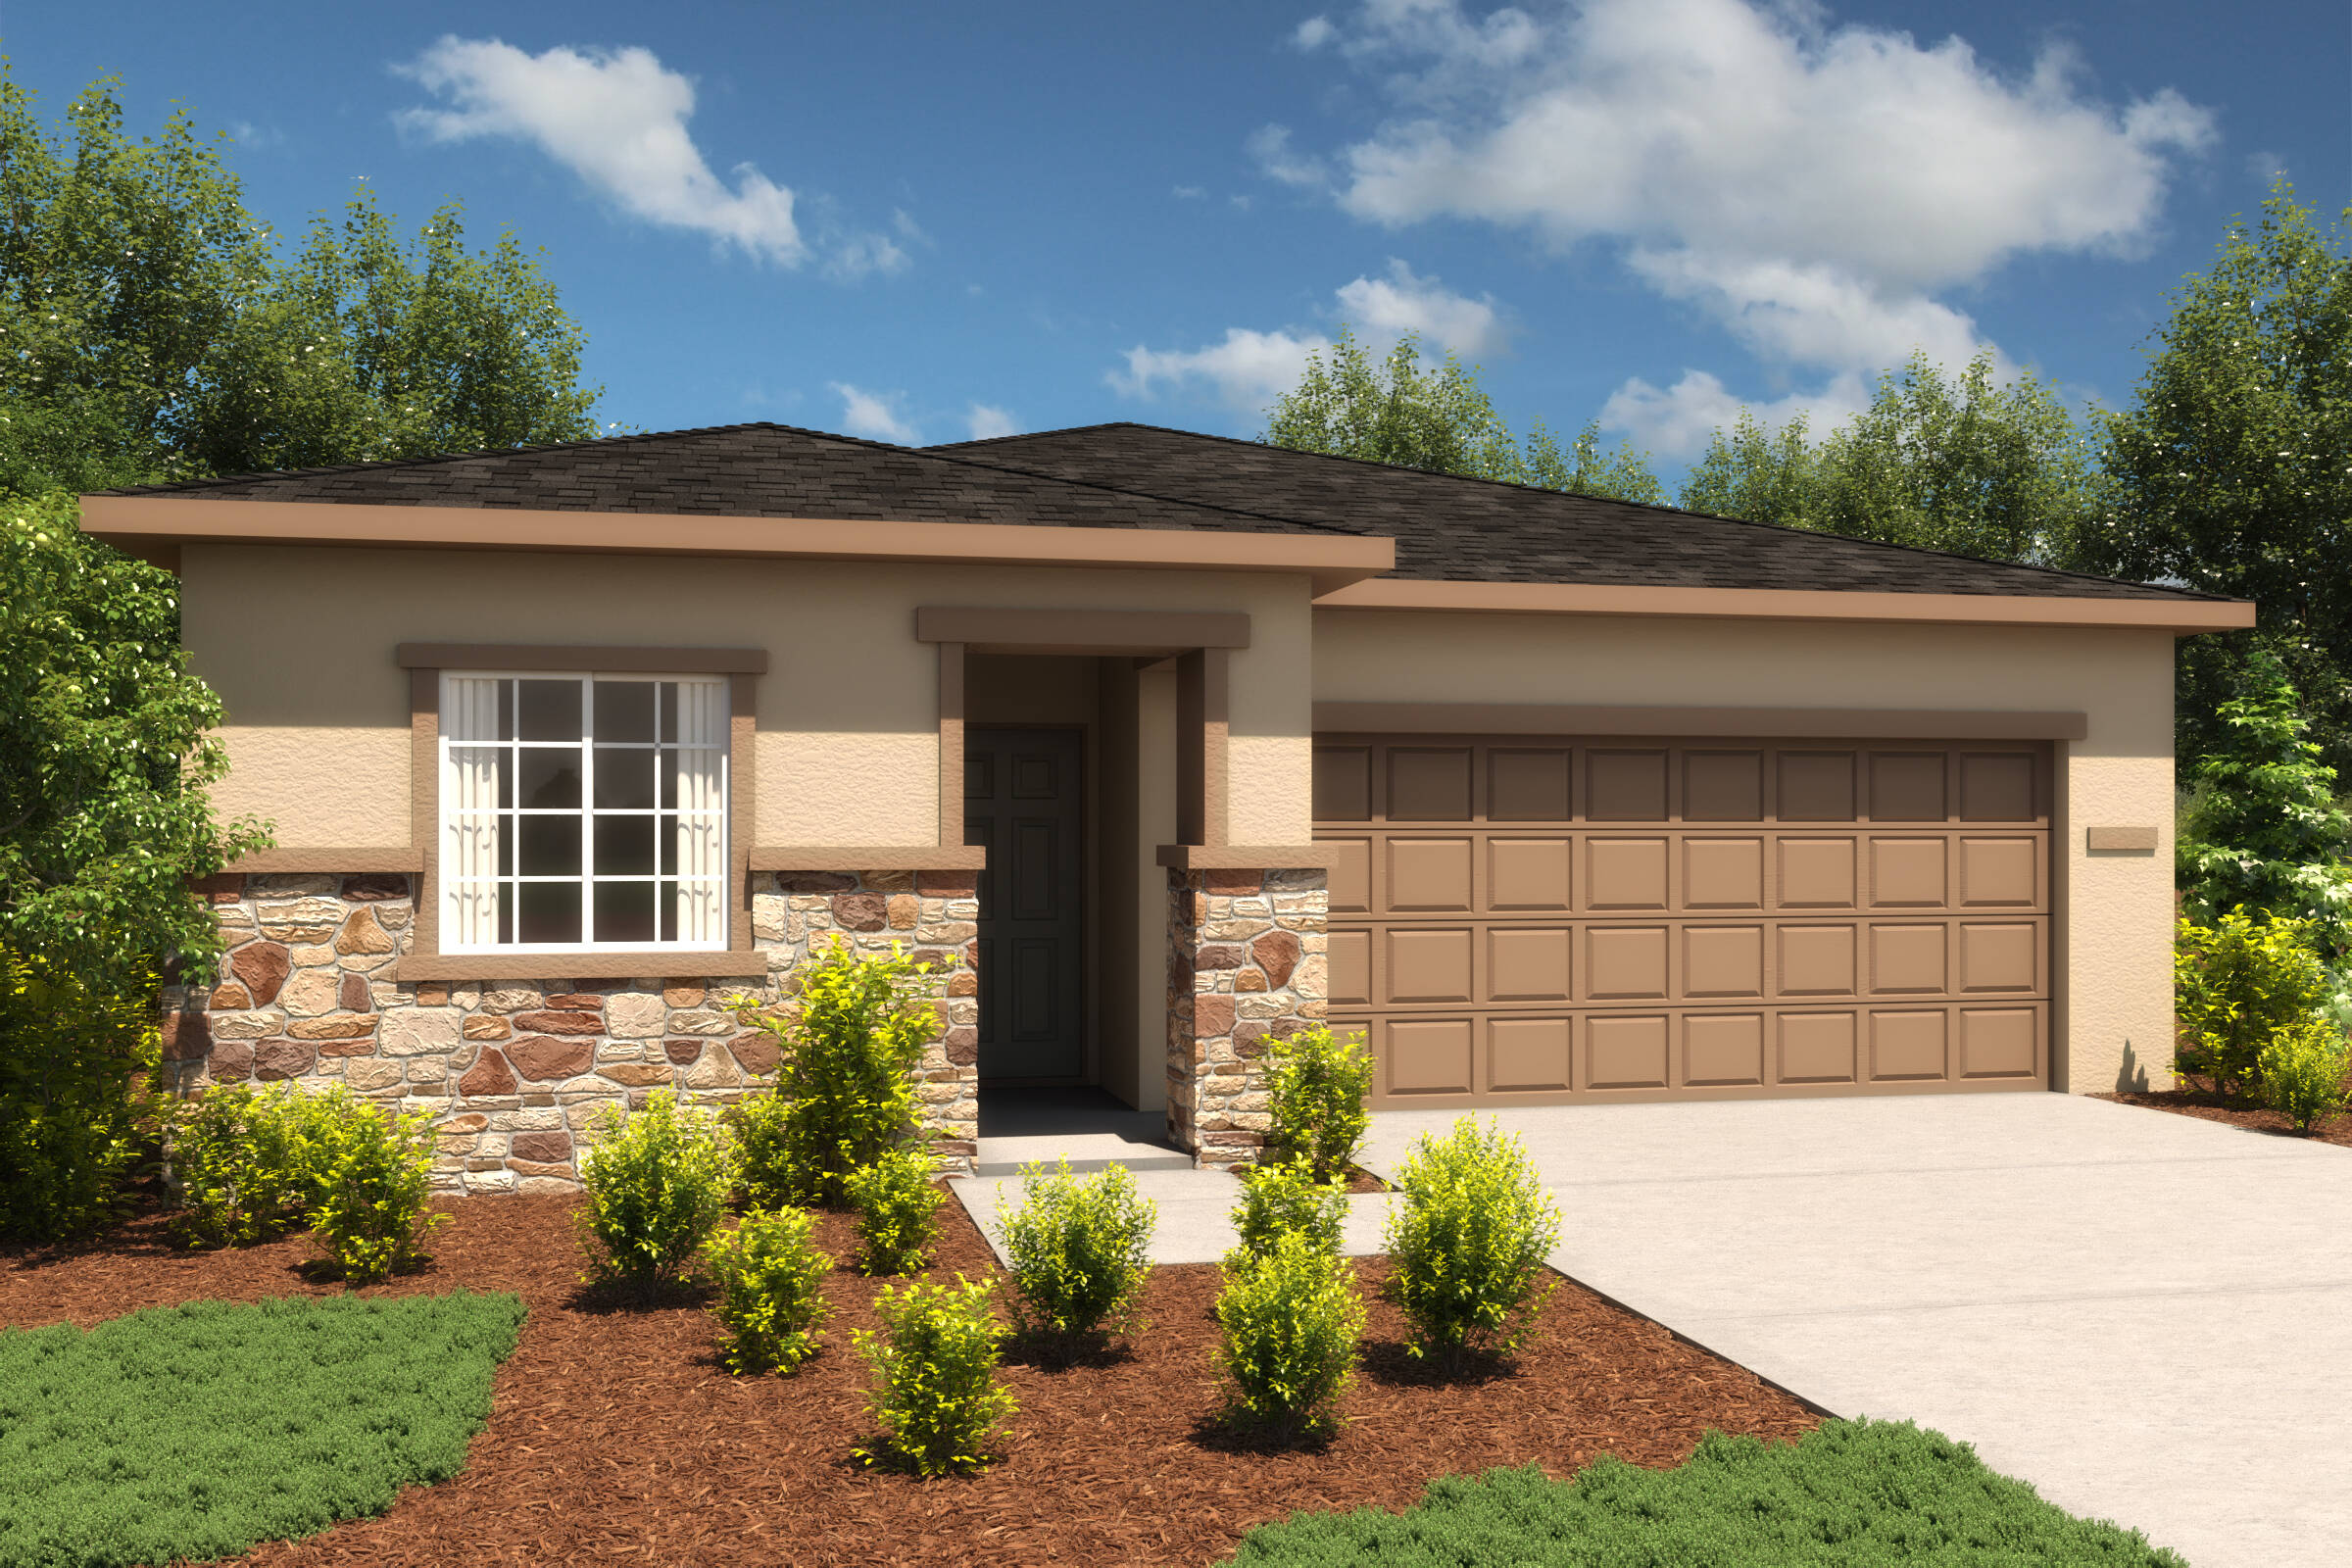 3520 peony cottage c new homes merced california